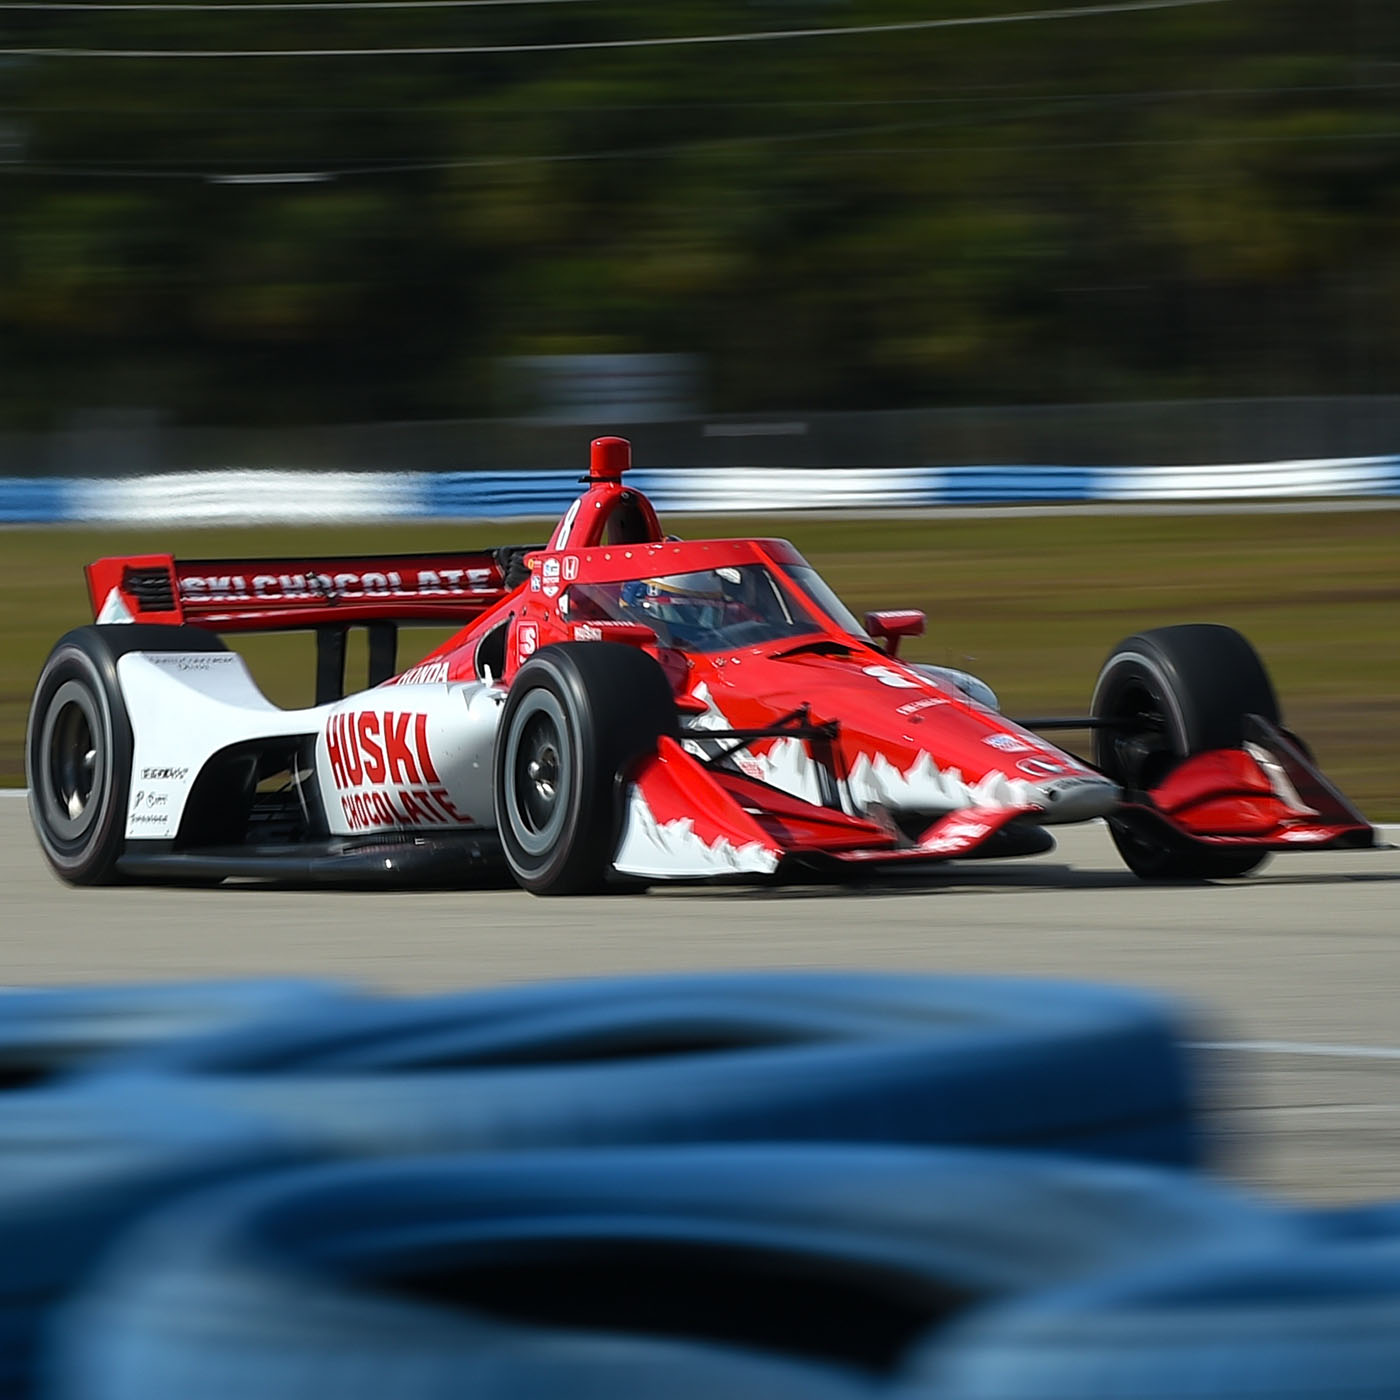 MP 1042: The Week In IndyCar, Feb 10, with Marcus Ericsson